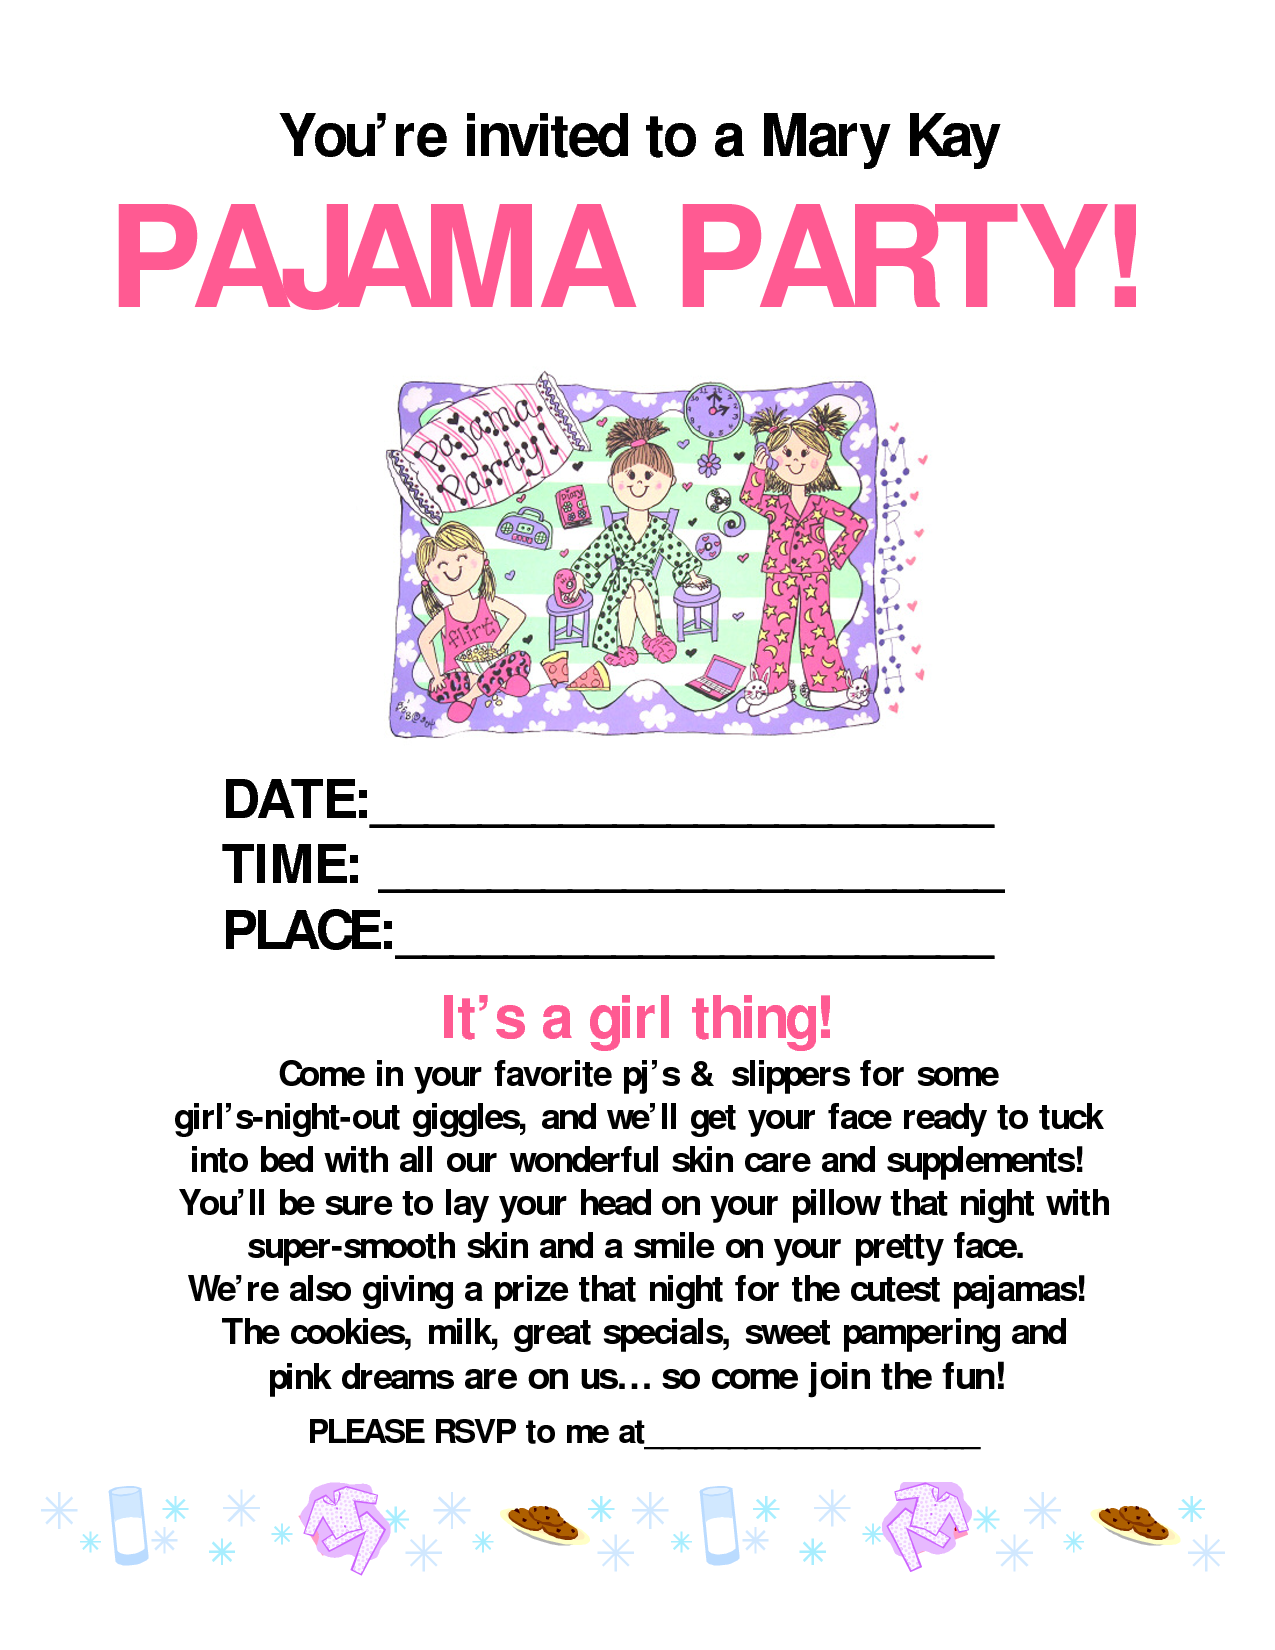 Pajama party mary kay mary kay pinterest mary kay for Mary kay invite templates